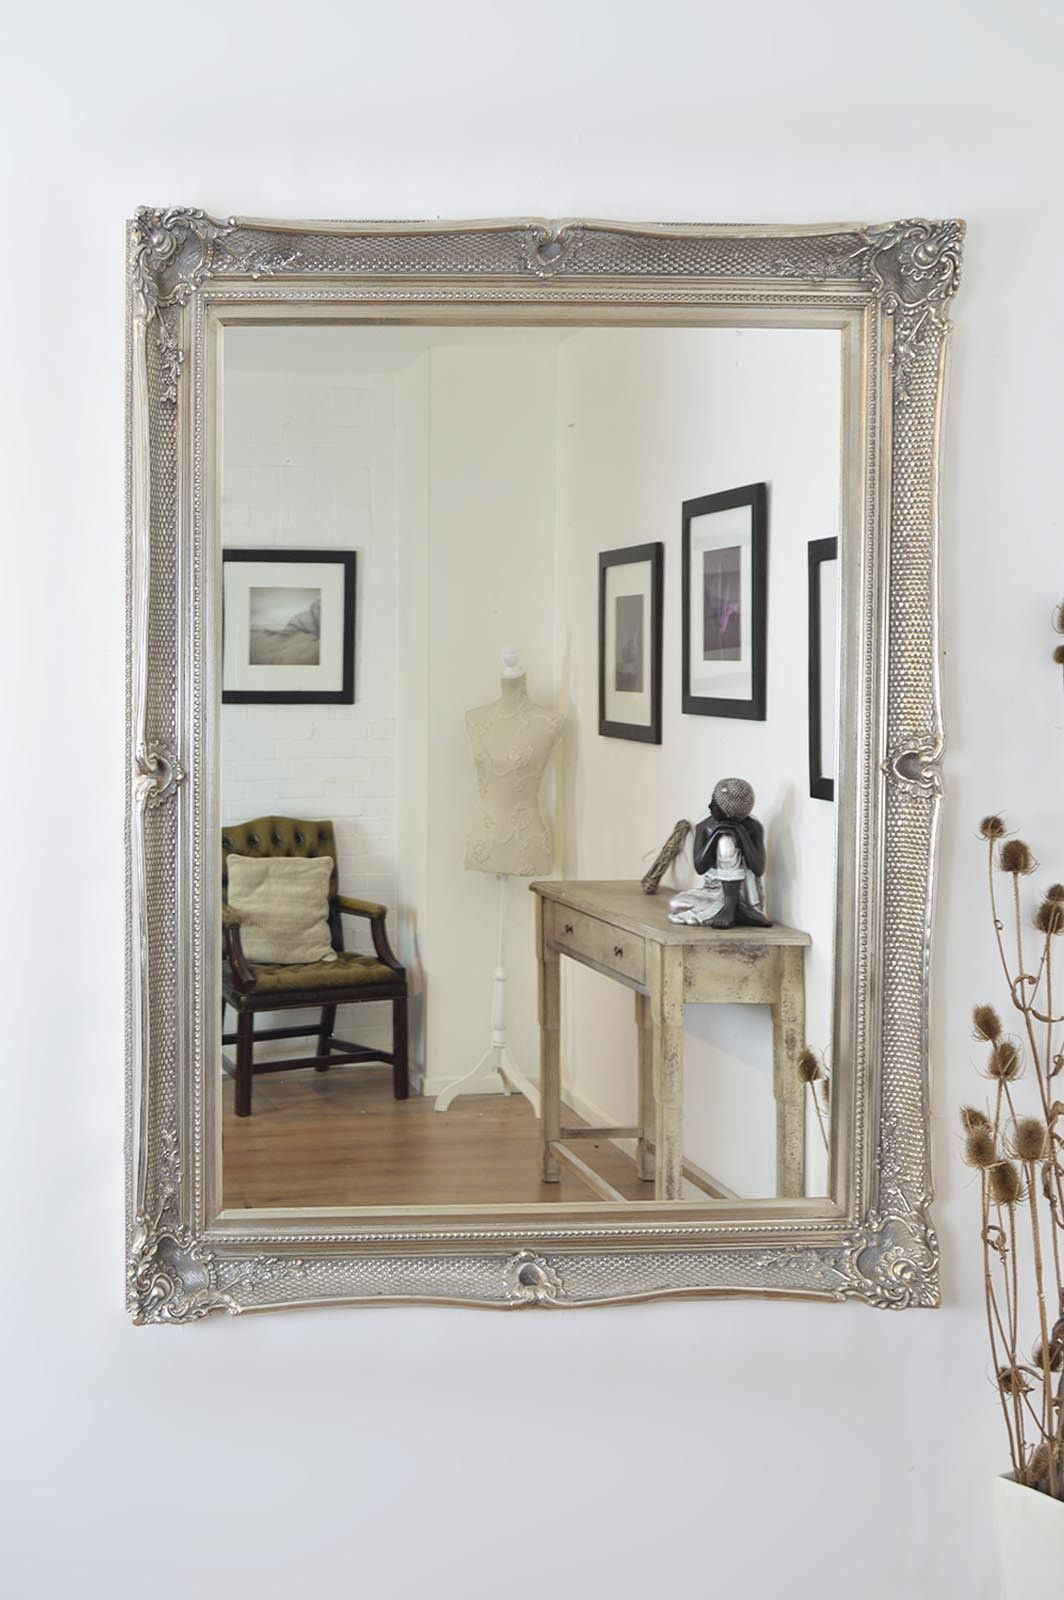 large silver wall mirror silver metal large silver ornate shabby chic wall mirror 5ft 4ft 149cm 119cm 4x3 ft glass